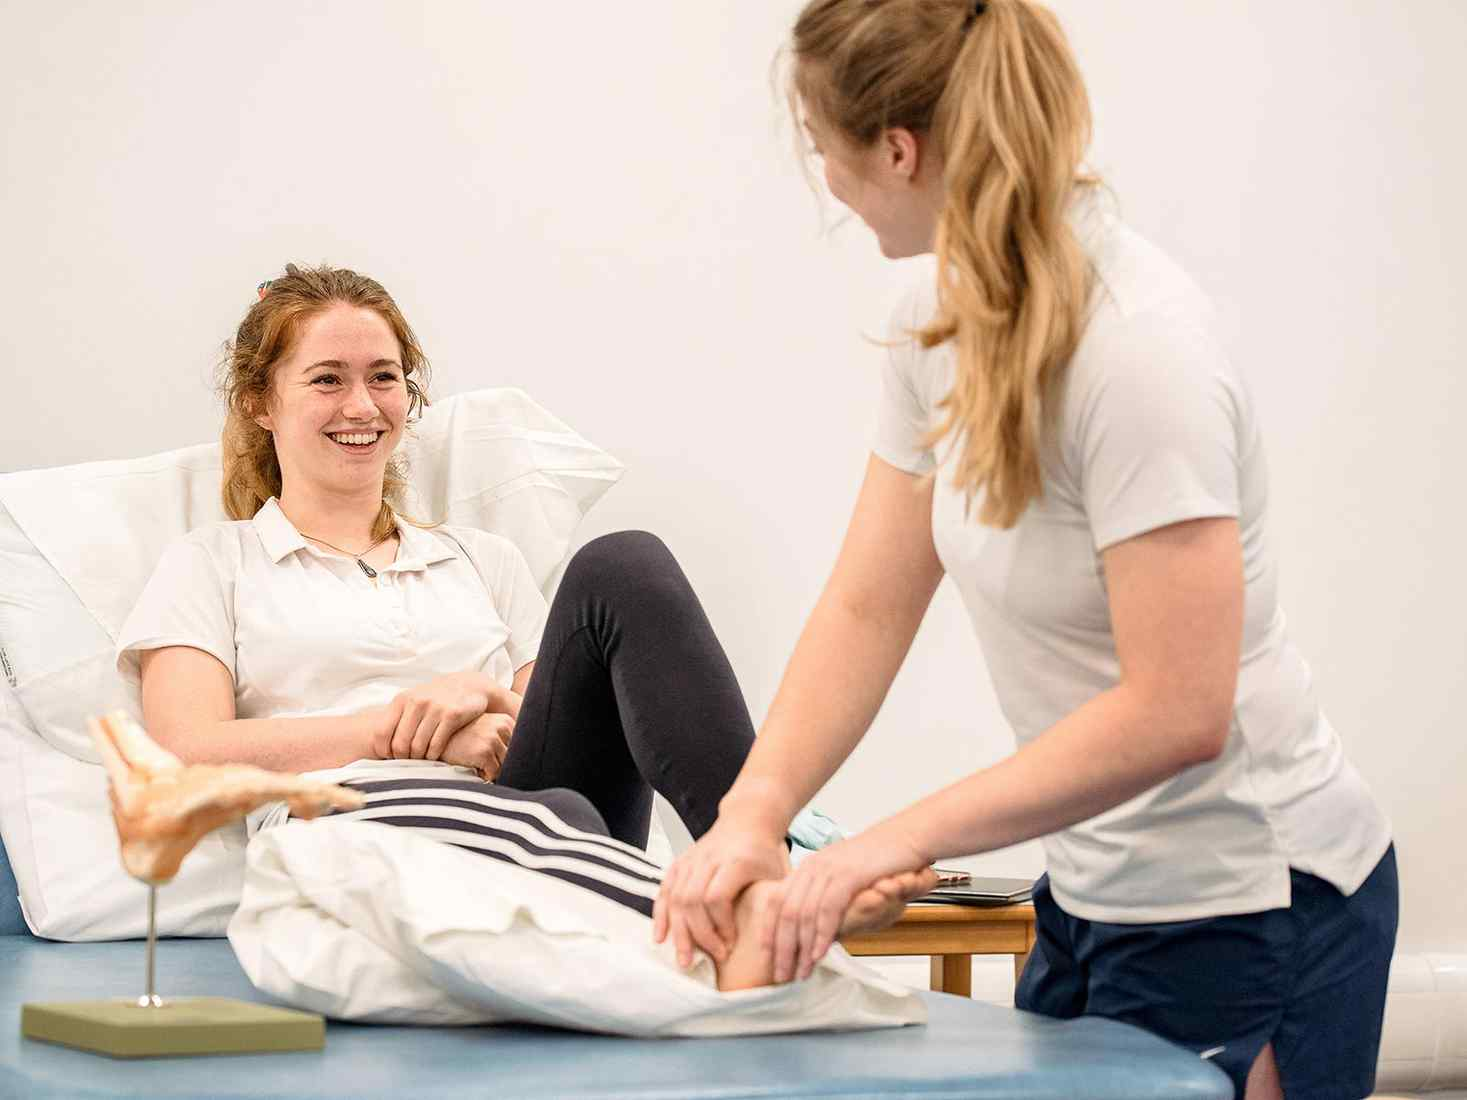 Students doing practical work on the foot